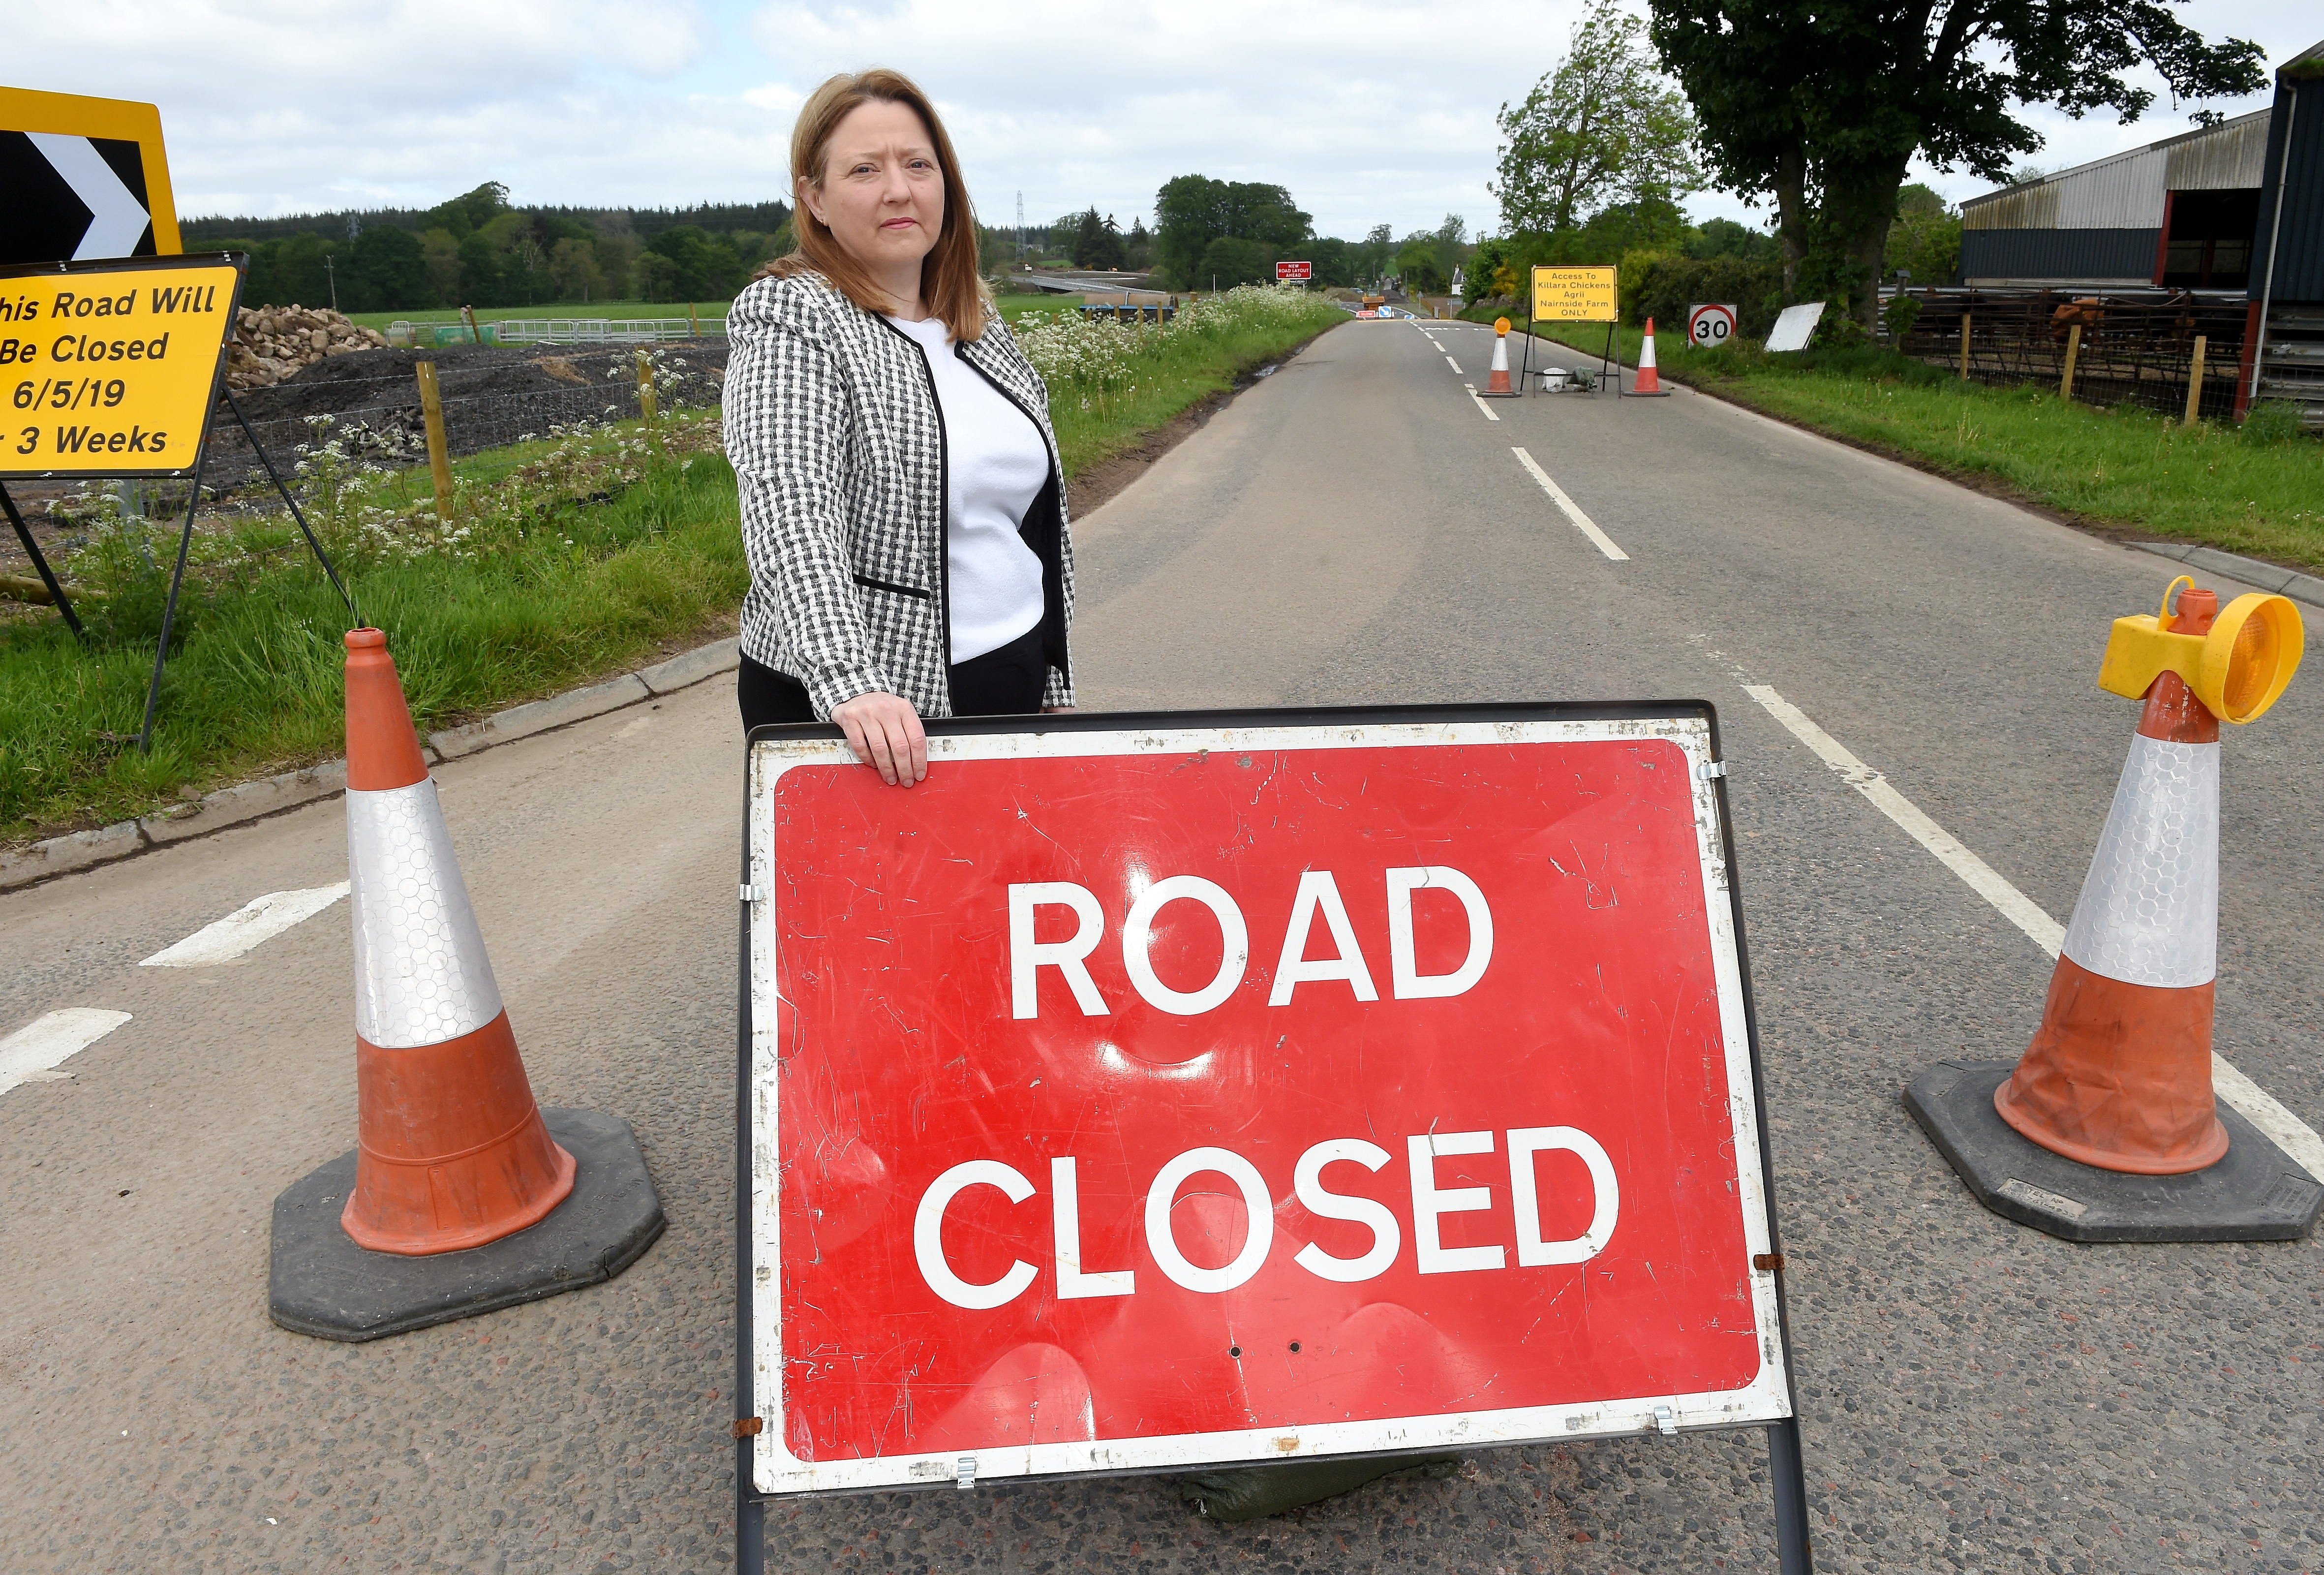 Christine Sinclair of the Cawdor Tavern who is concerned over the loss of business during the closure of the road at White Bridge for construction work.